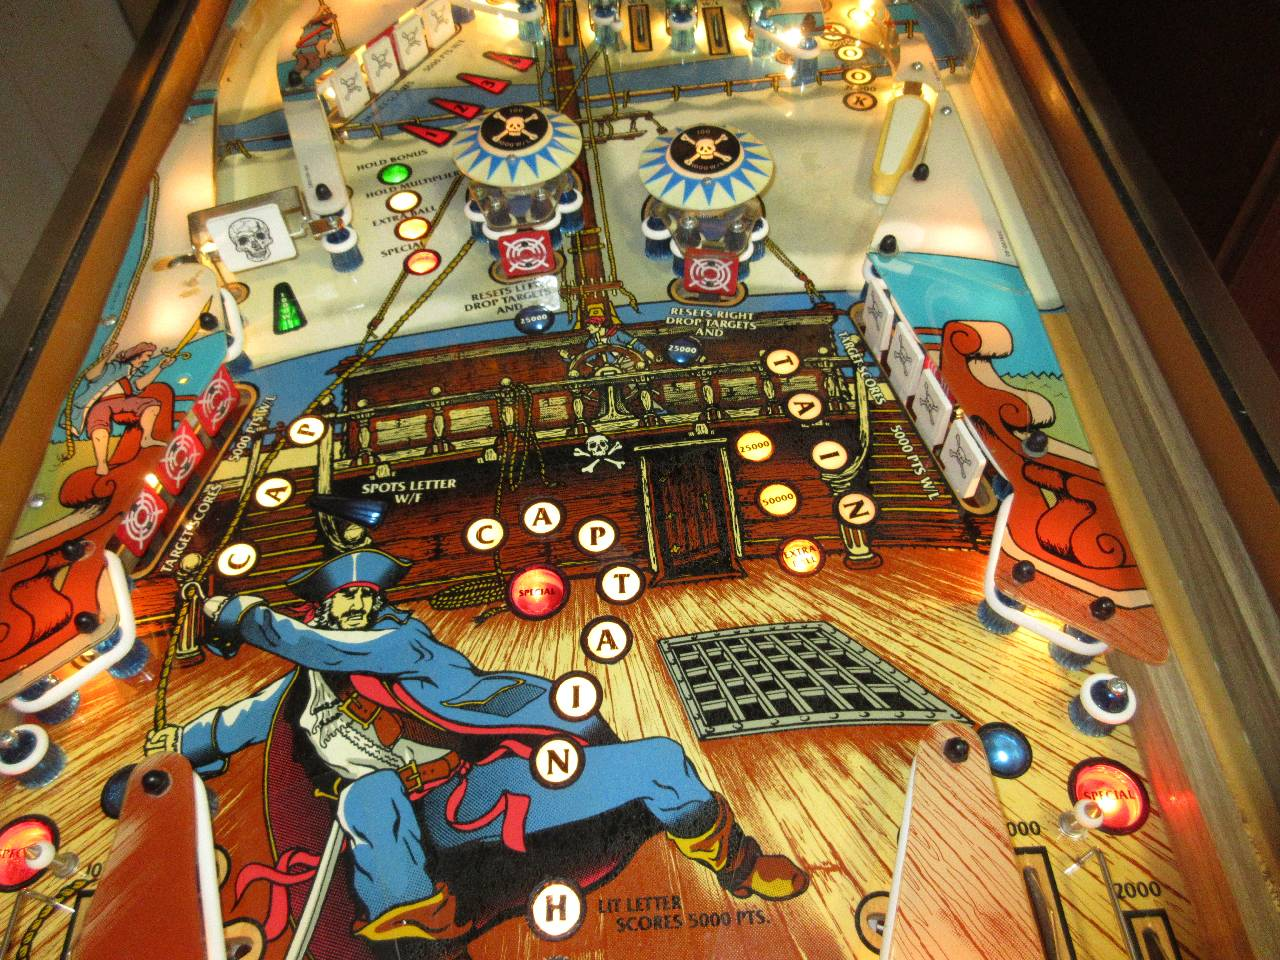 Game Plan Captain Hook Pinball Machine #1 - Pinballmania LLC